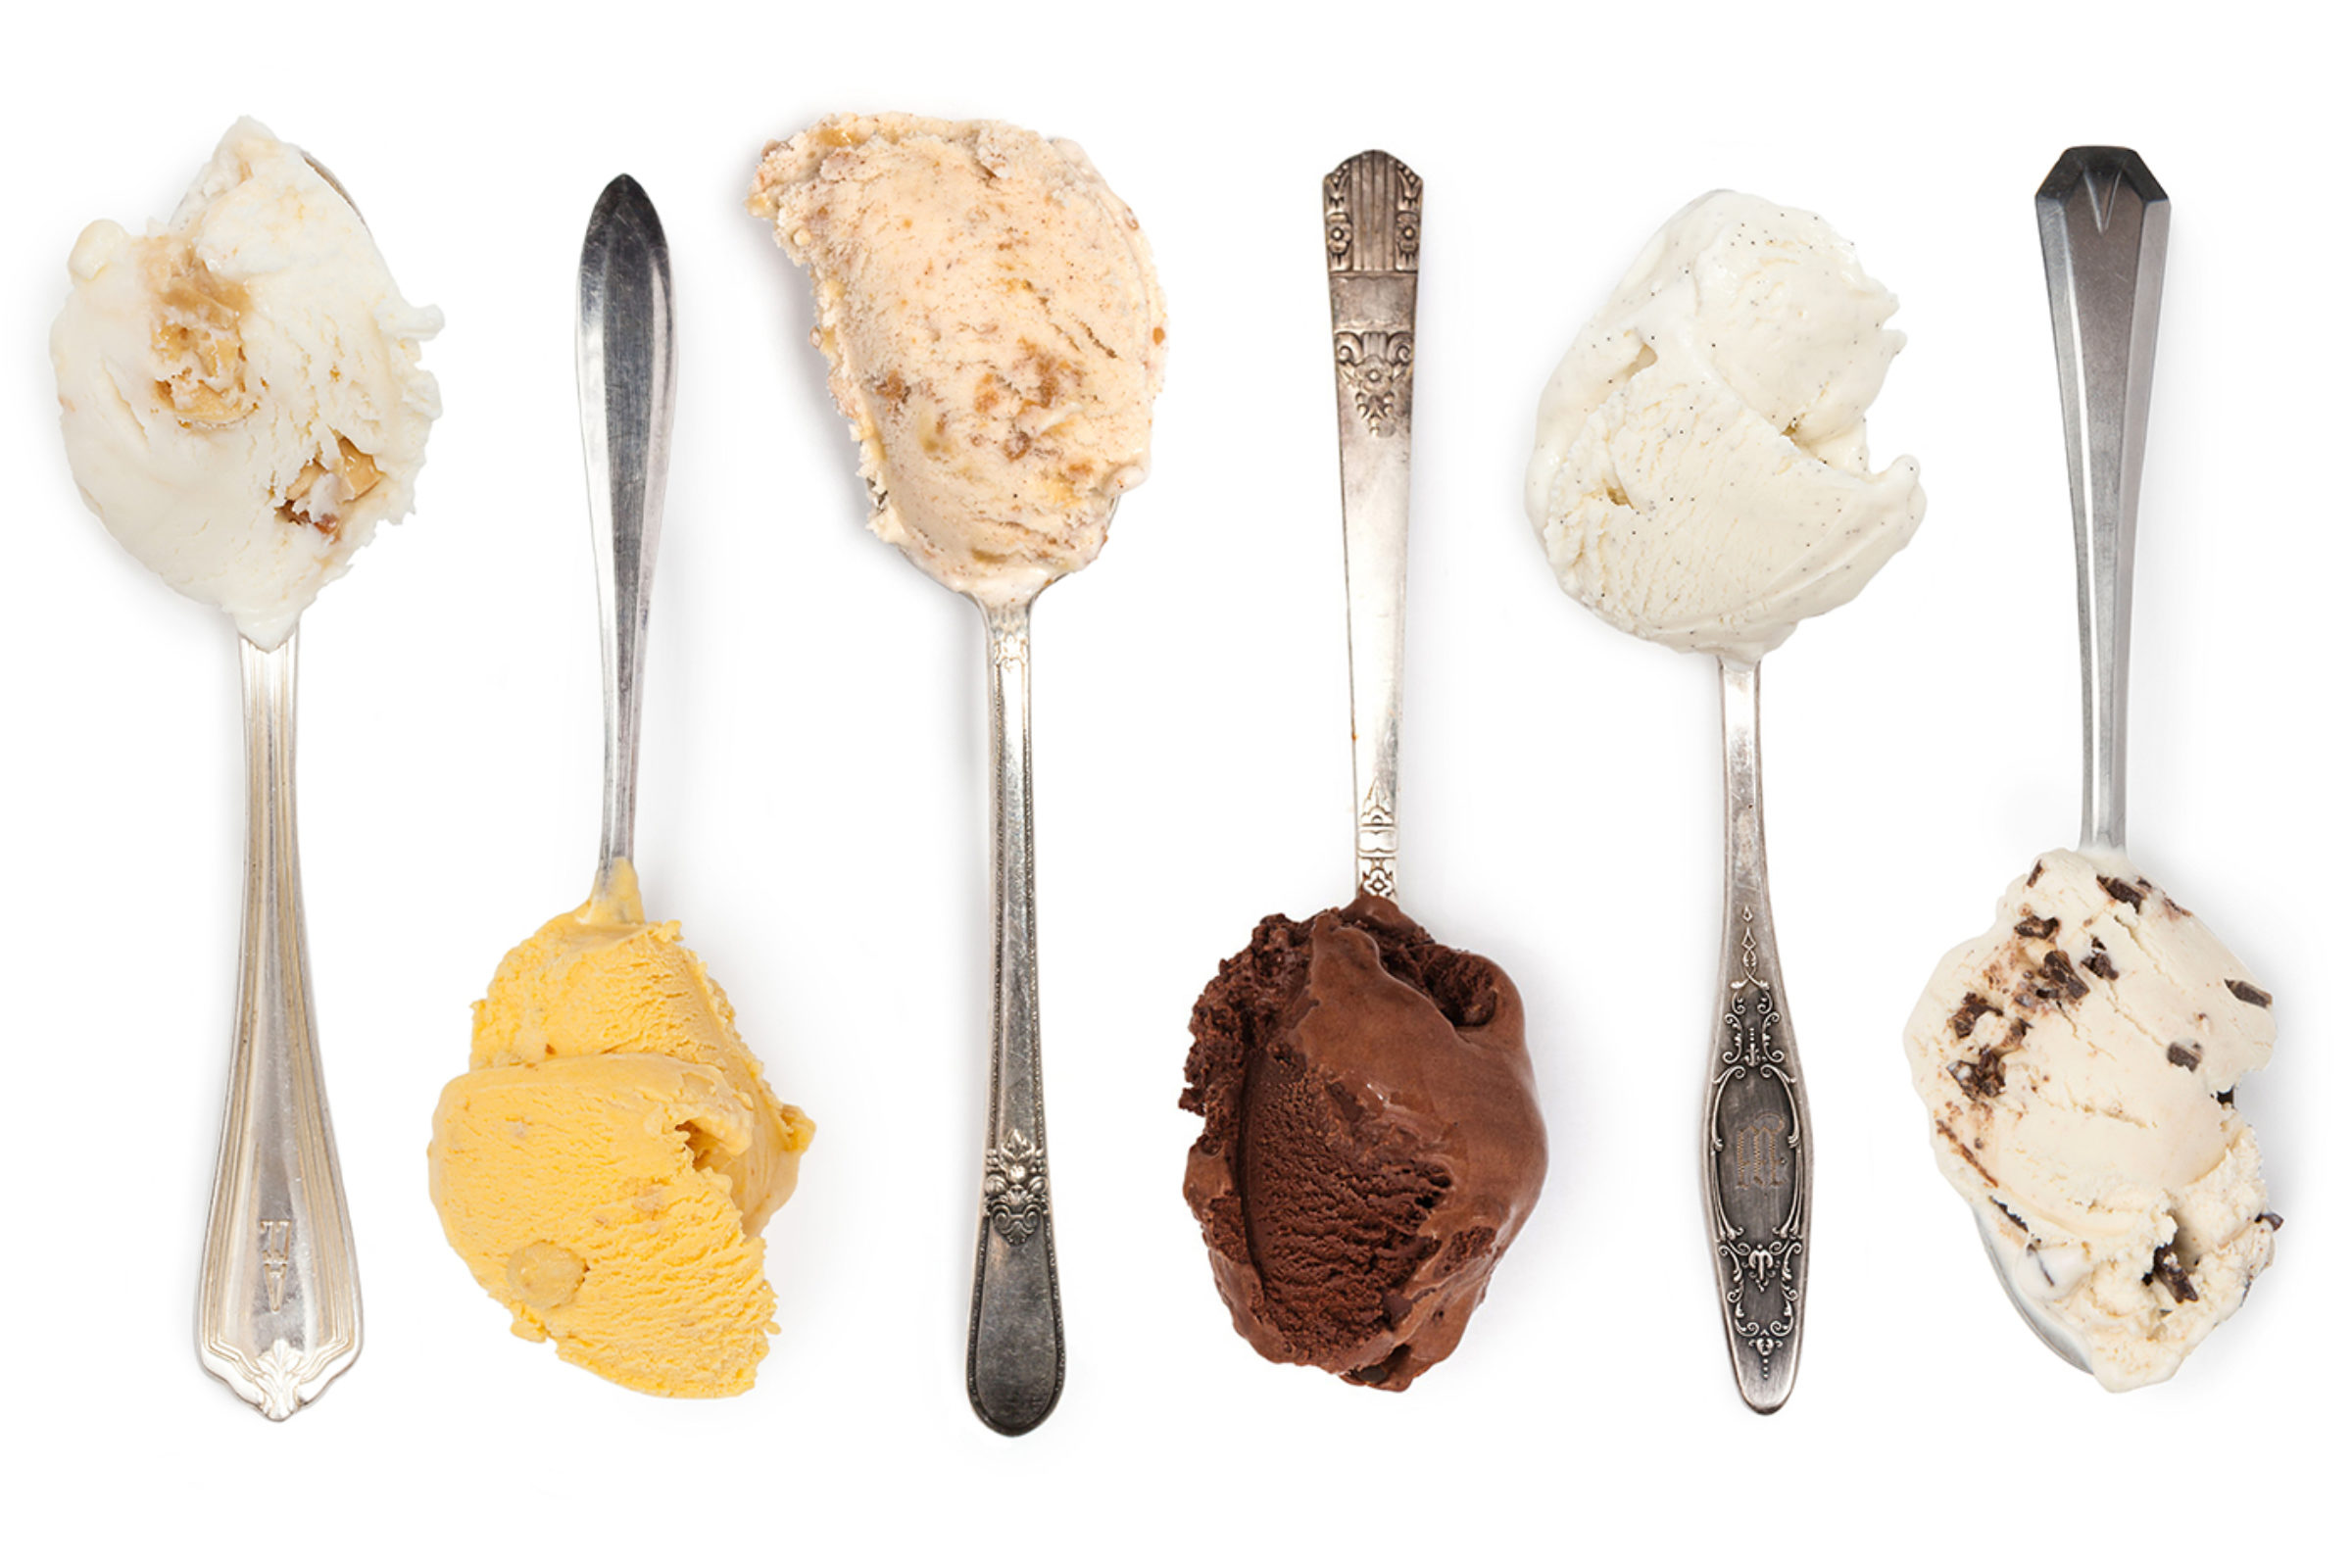 Pick-Your-Own-Mix-Spoons-2400x1600.jpg